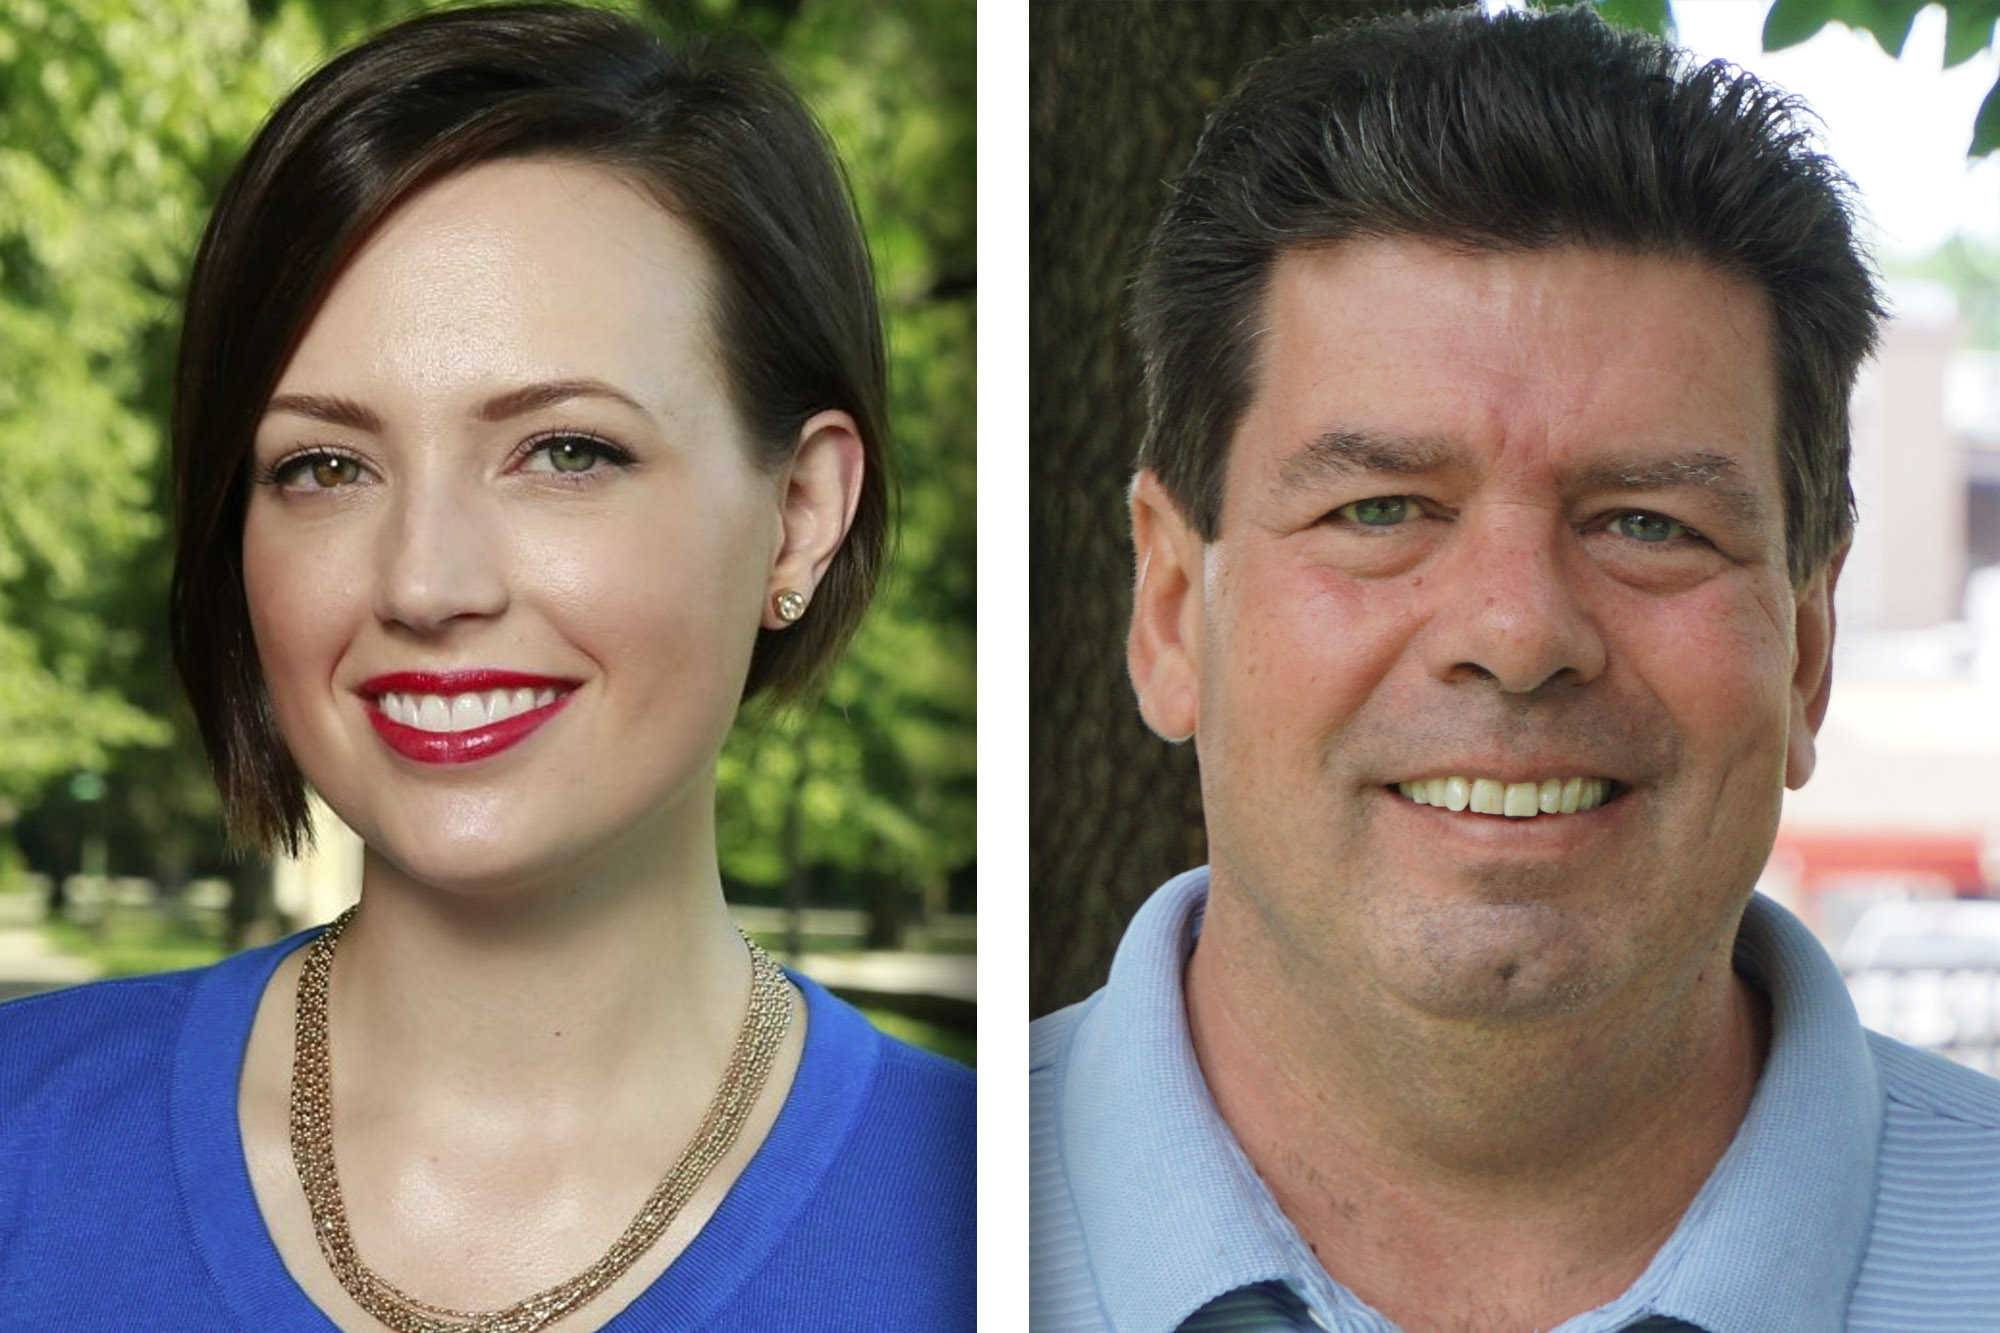 Merry Marwig, left, and Michael McAuliffe are candidates for the 20th District in the State House.